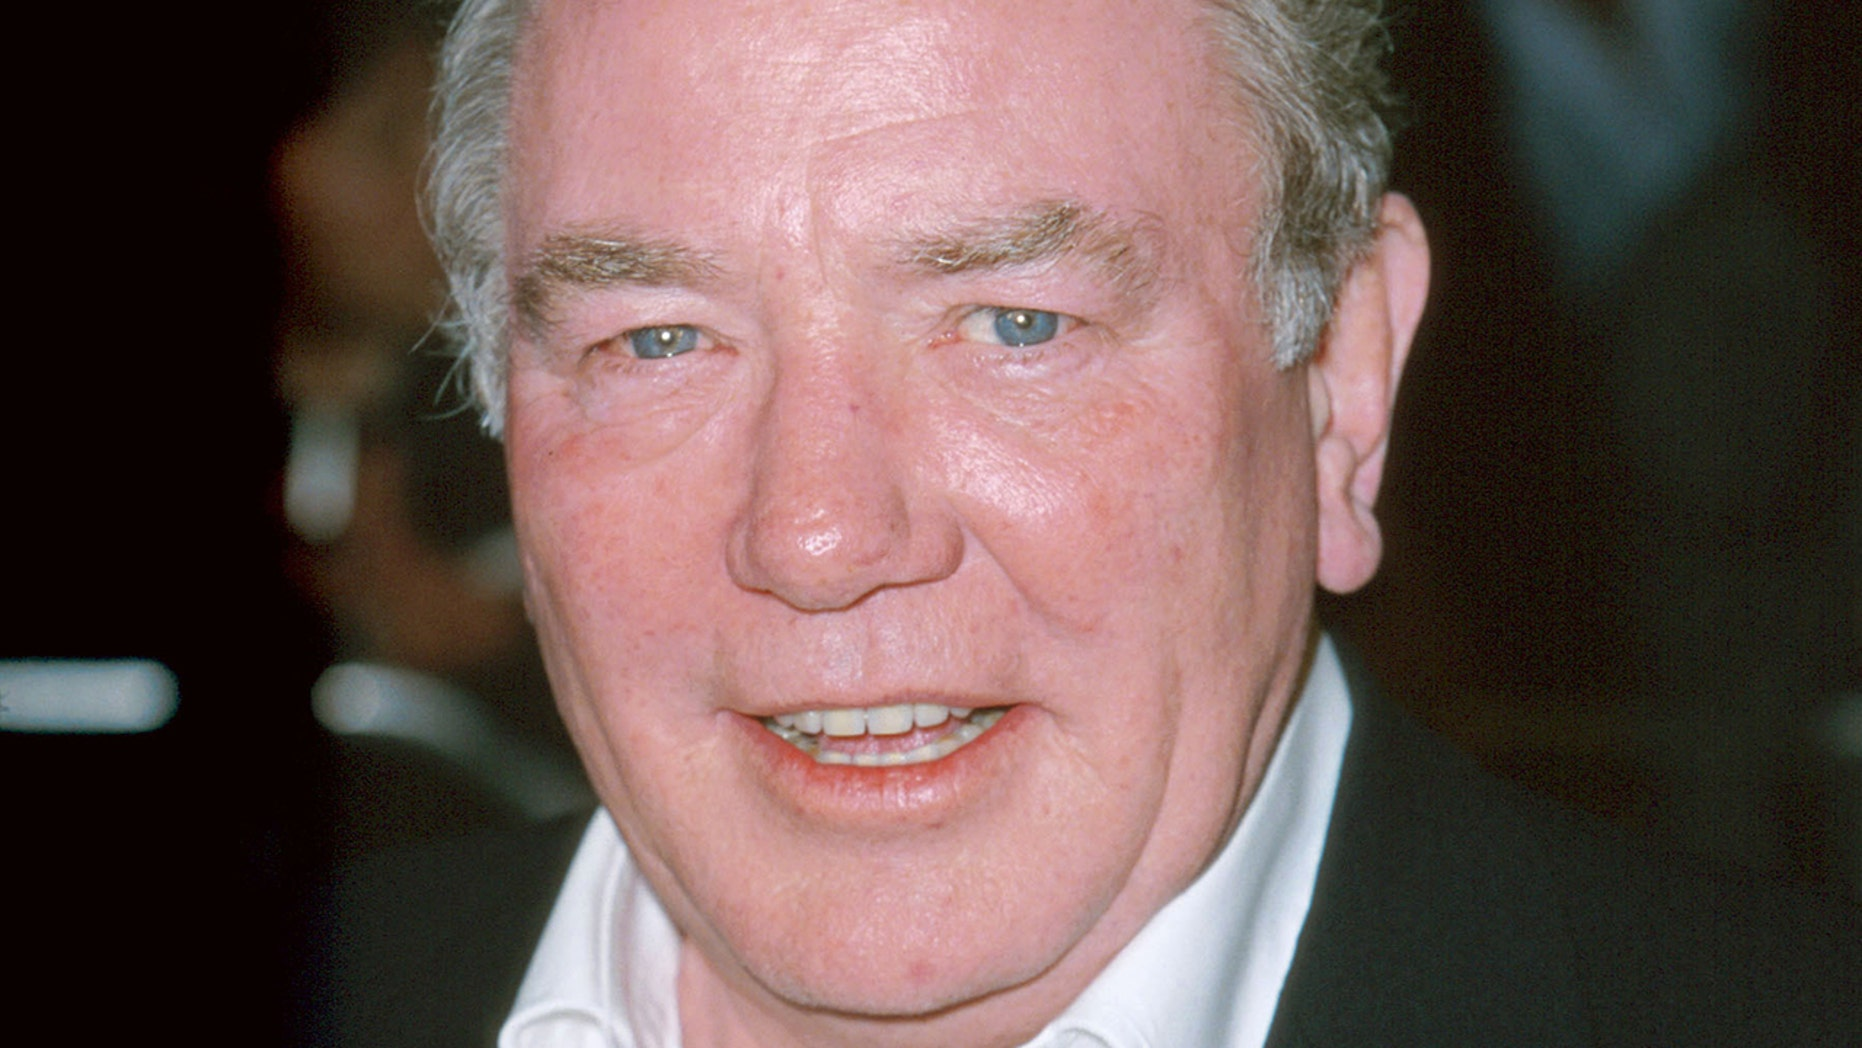 Albert Finney, Miller's Crossing and Erin Brockovich actor, dies at 82